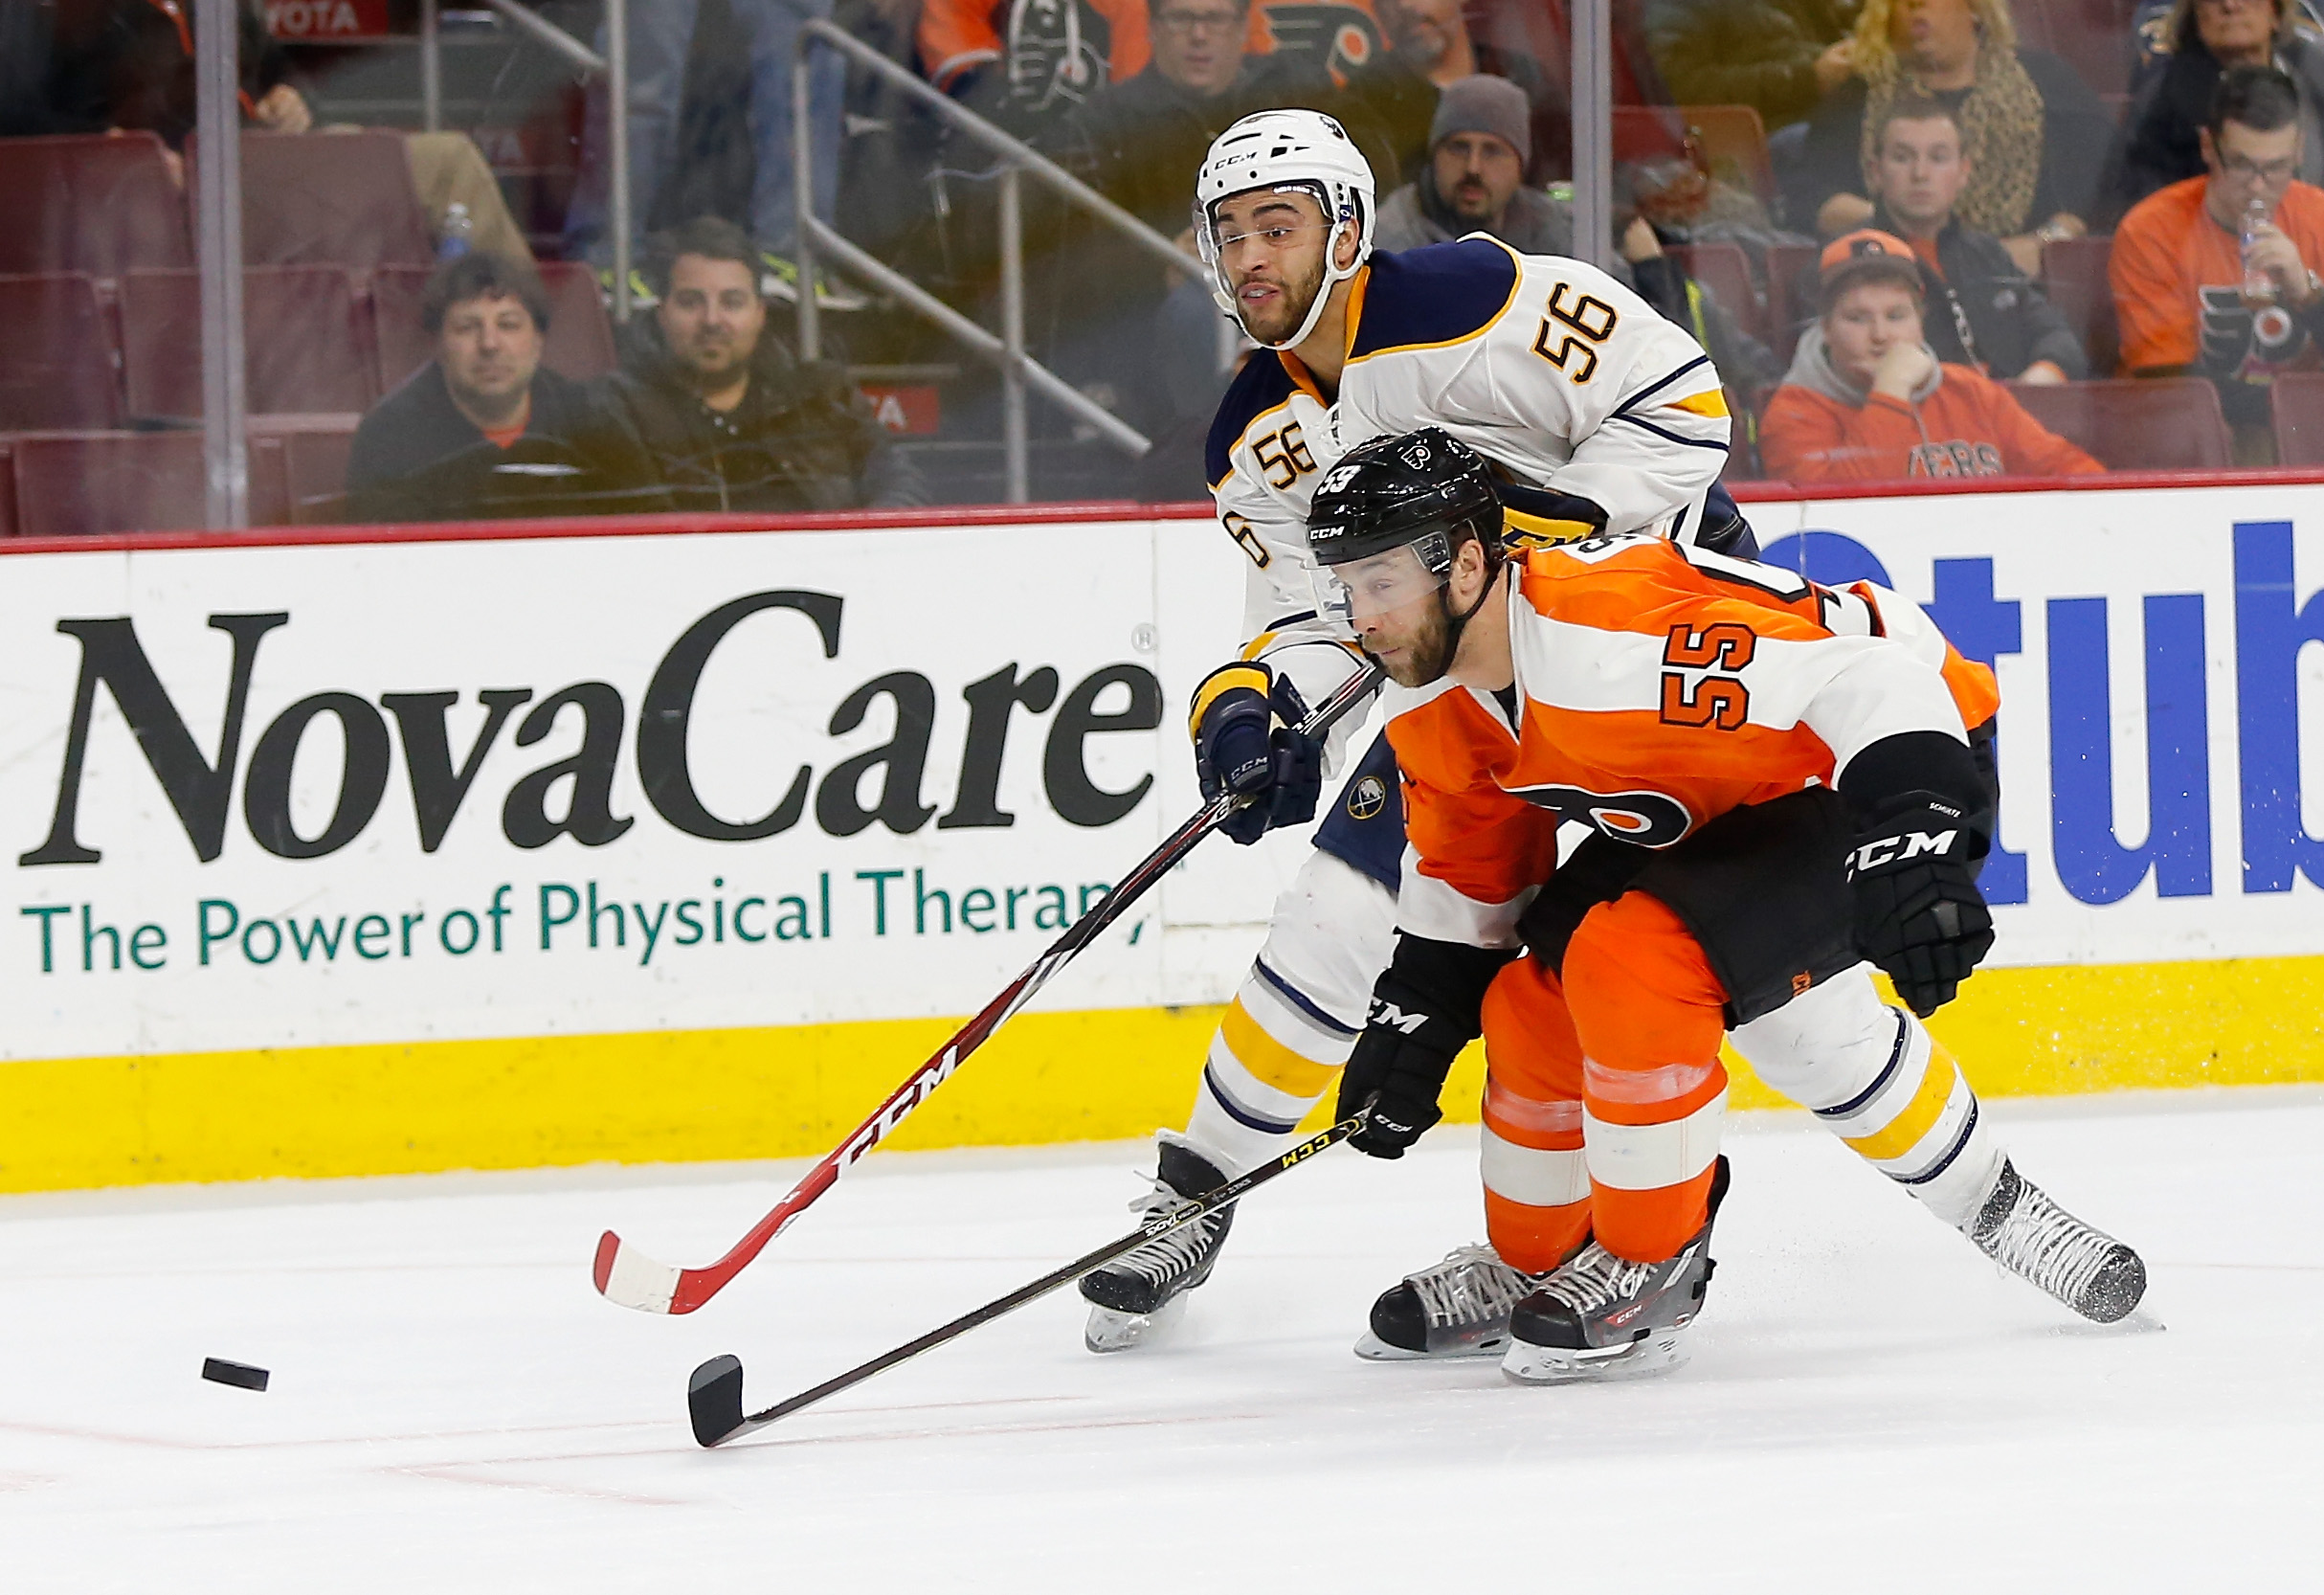 Justin Bailey has appeared in 10 NHL games and is looking for his first point. (Getty Images)